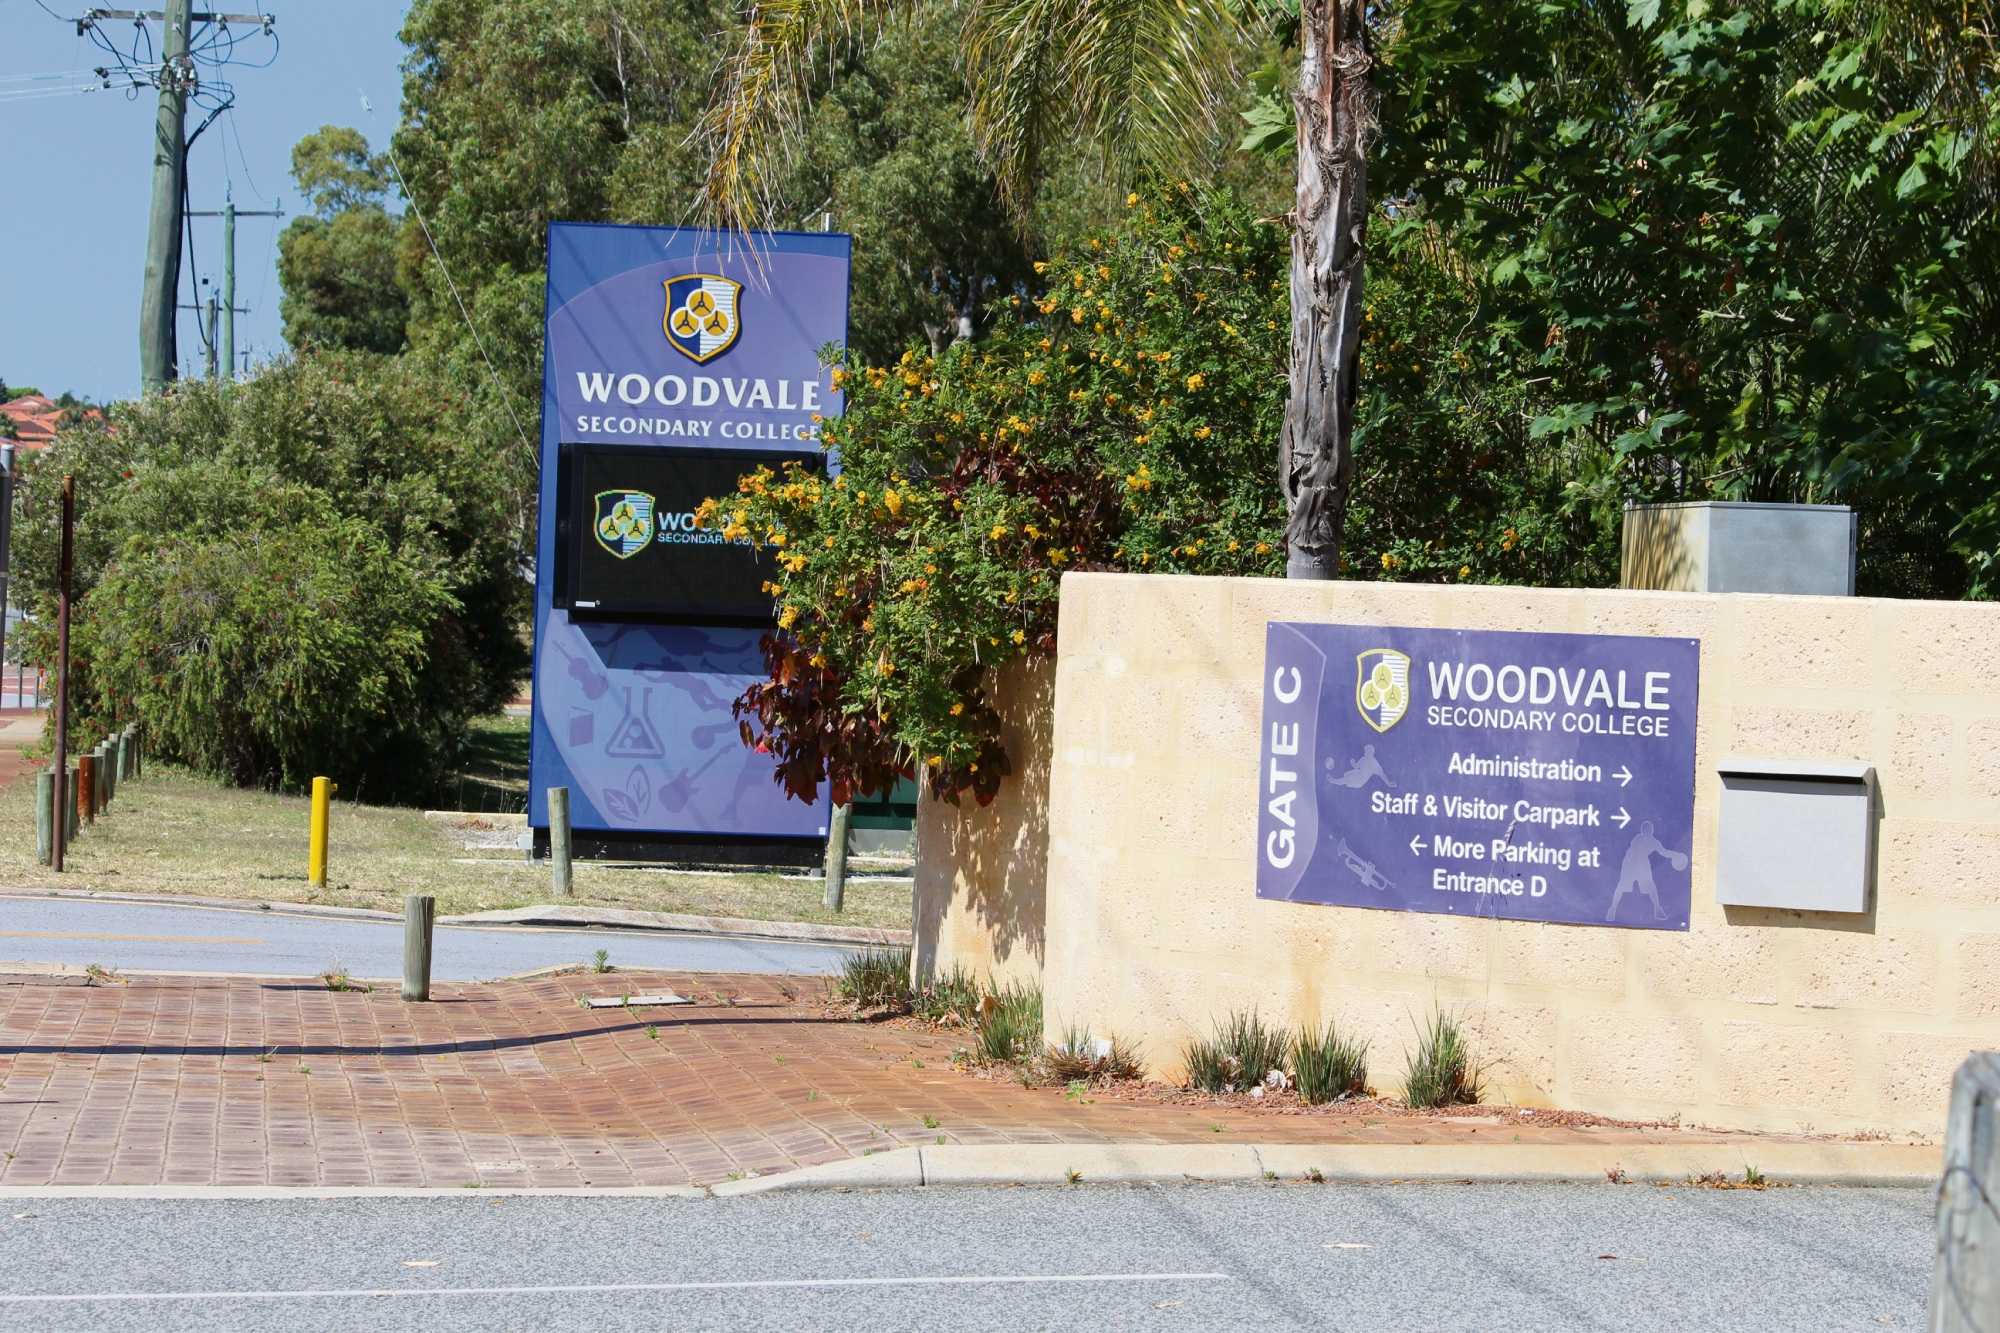 WA Police forensics at Woodvale Secondary College